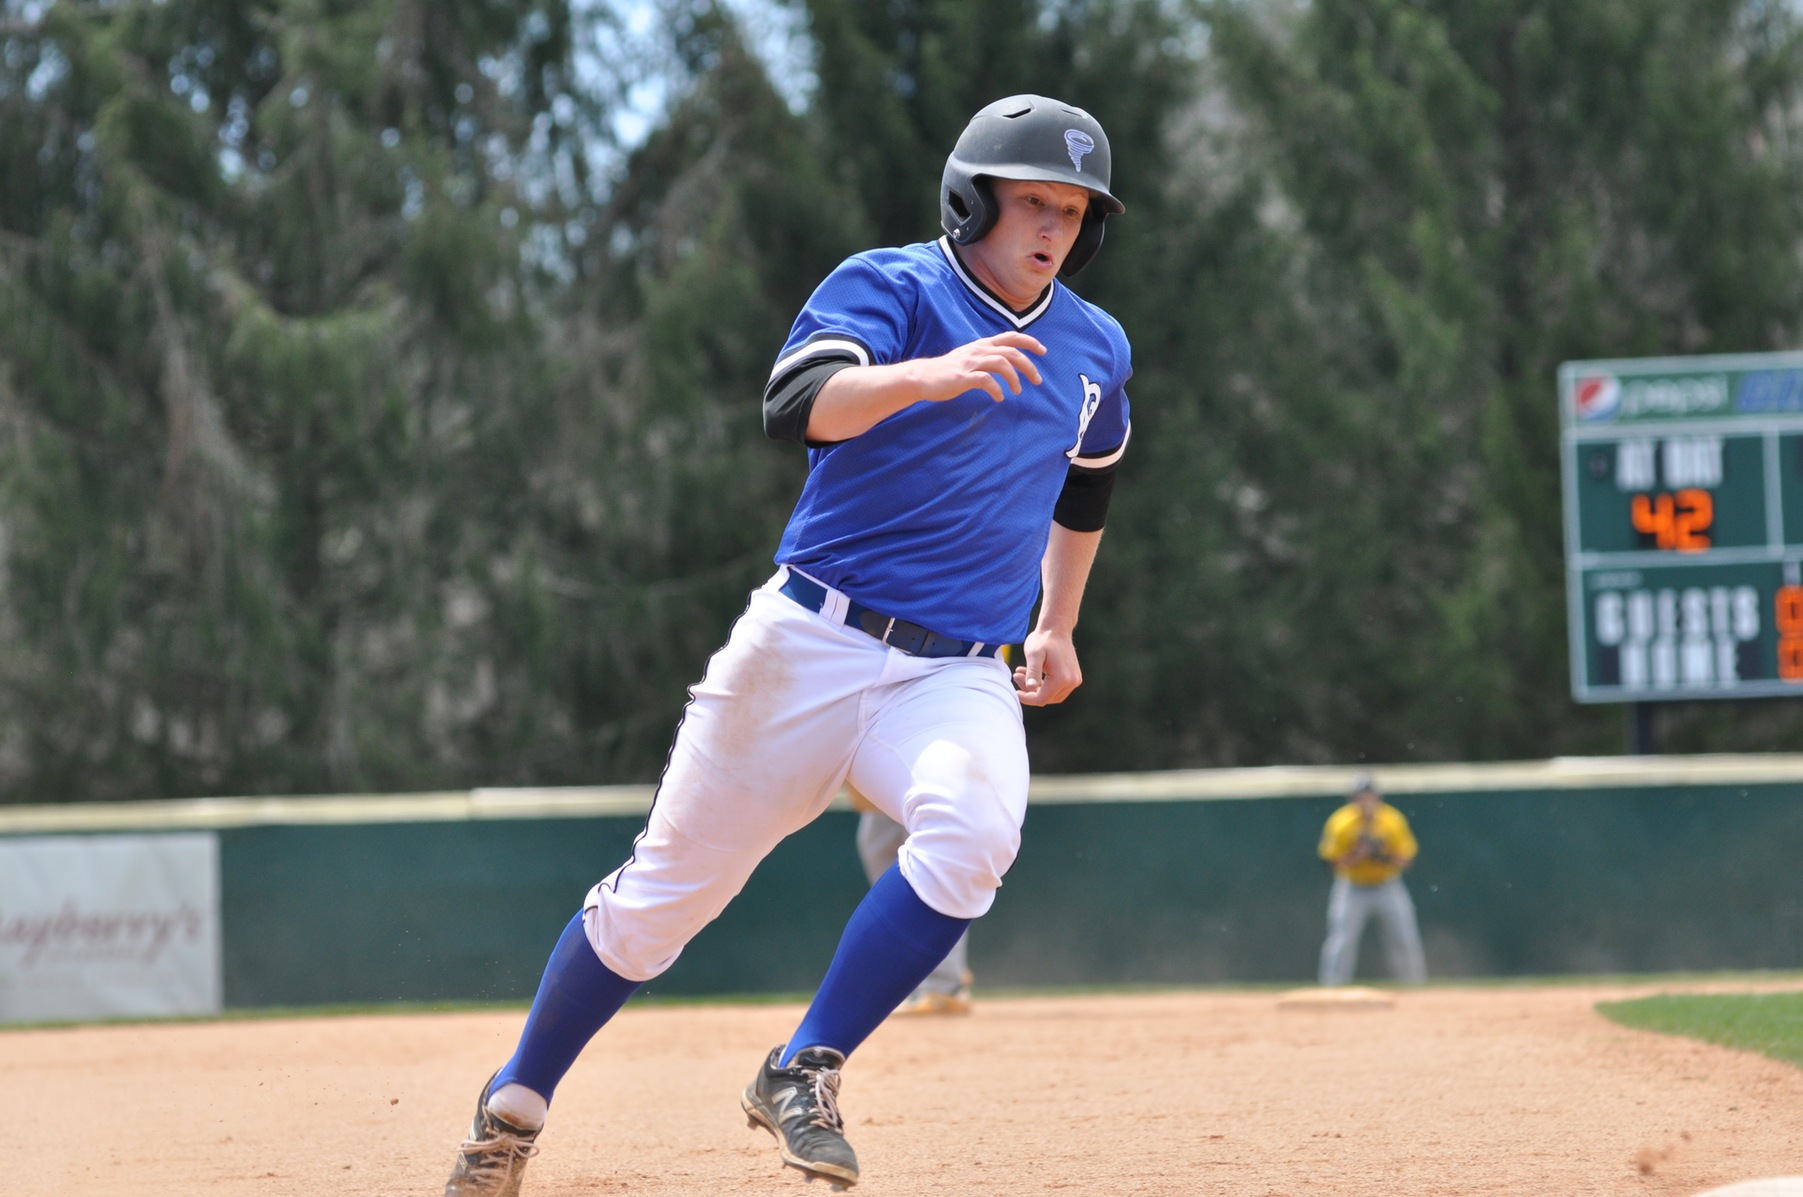 Brevard Splits Doubleheader with William Peace to End Season